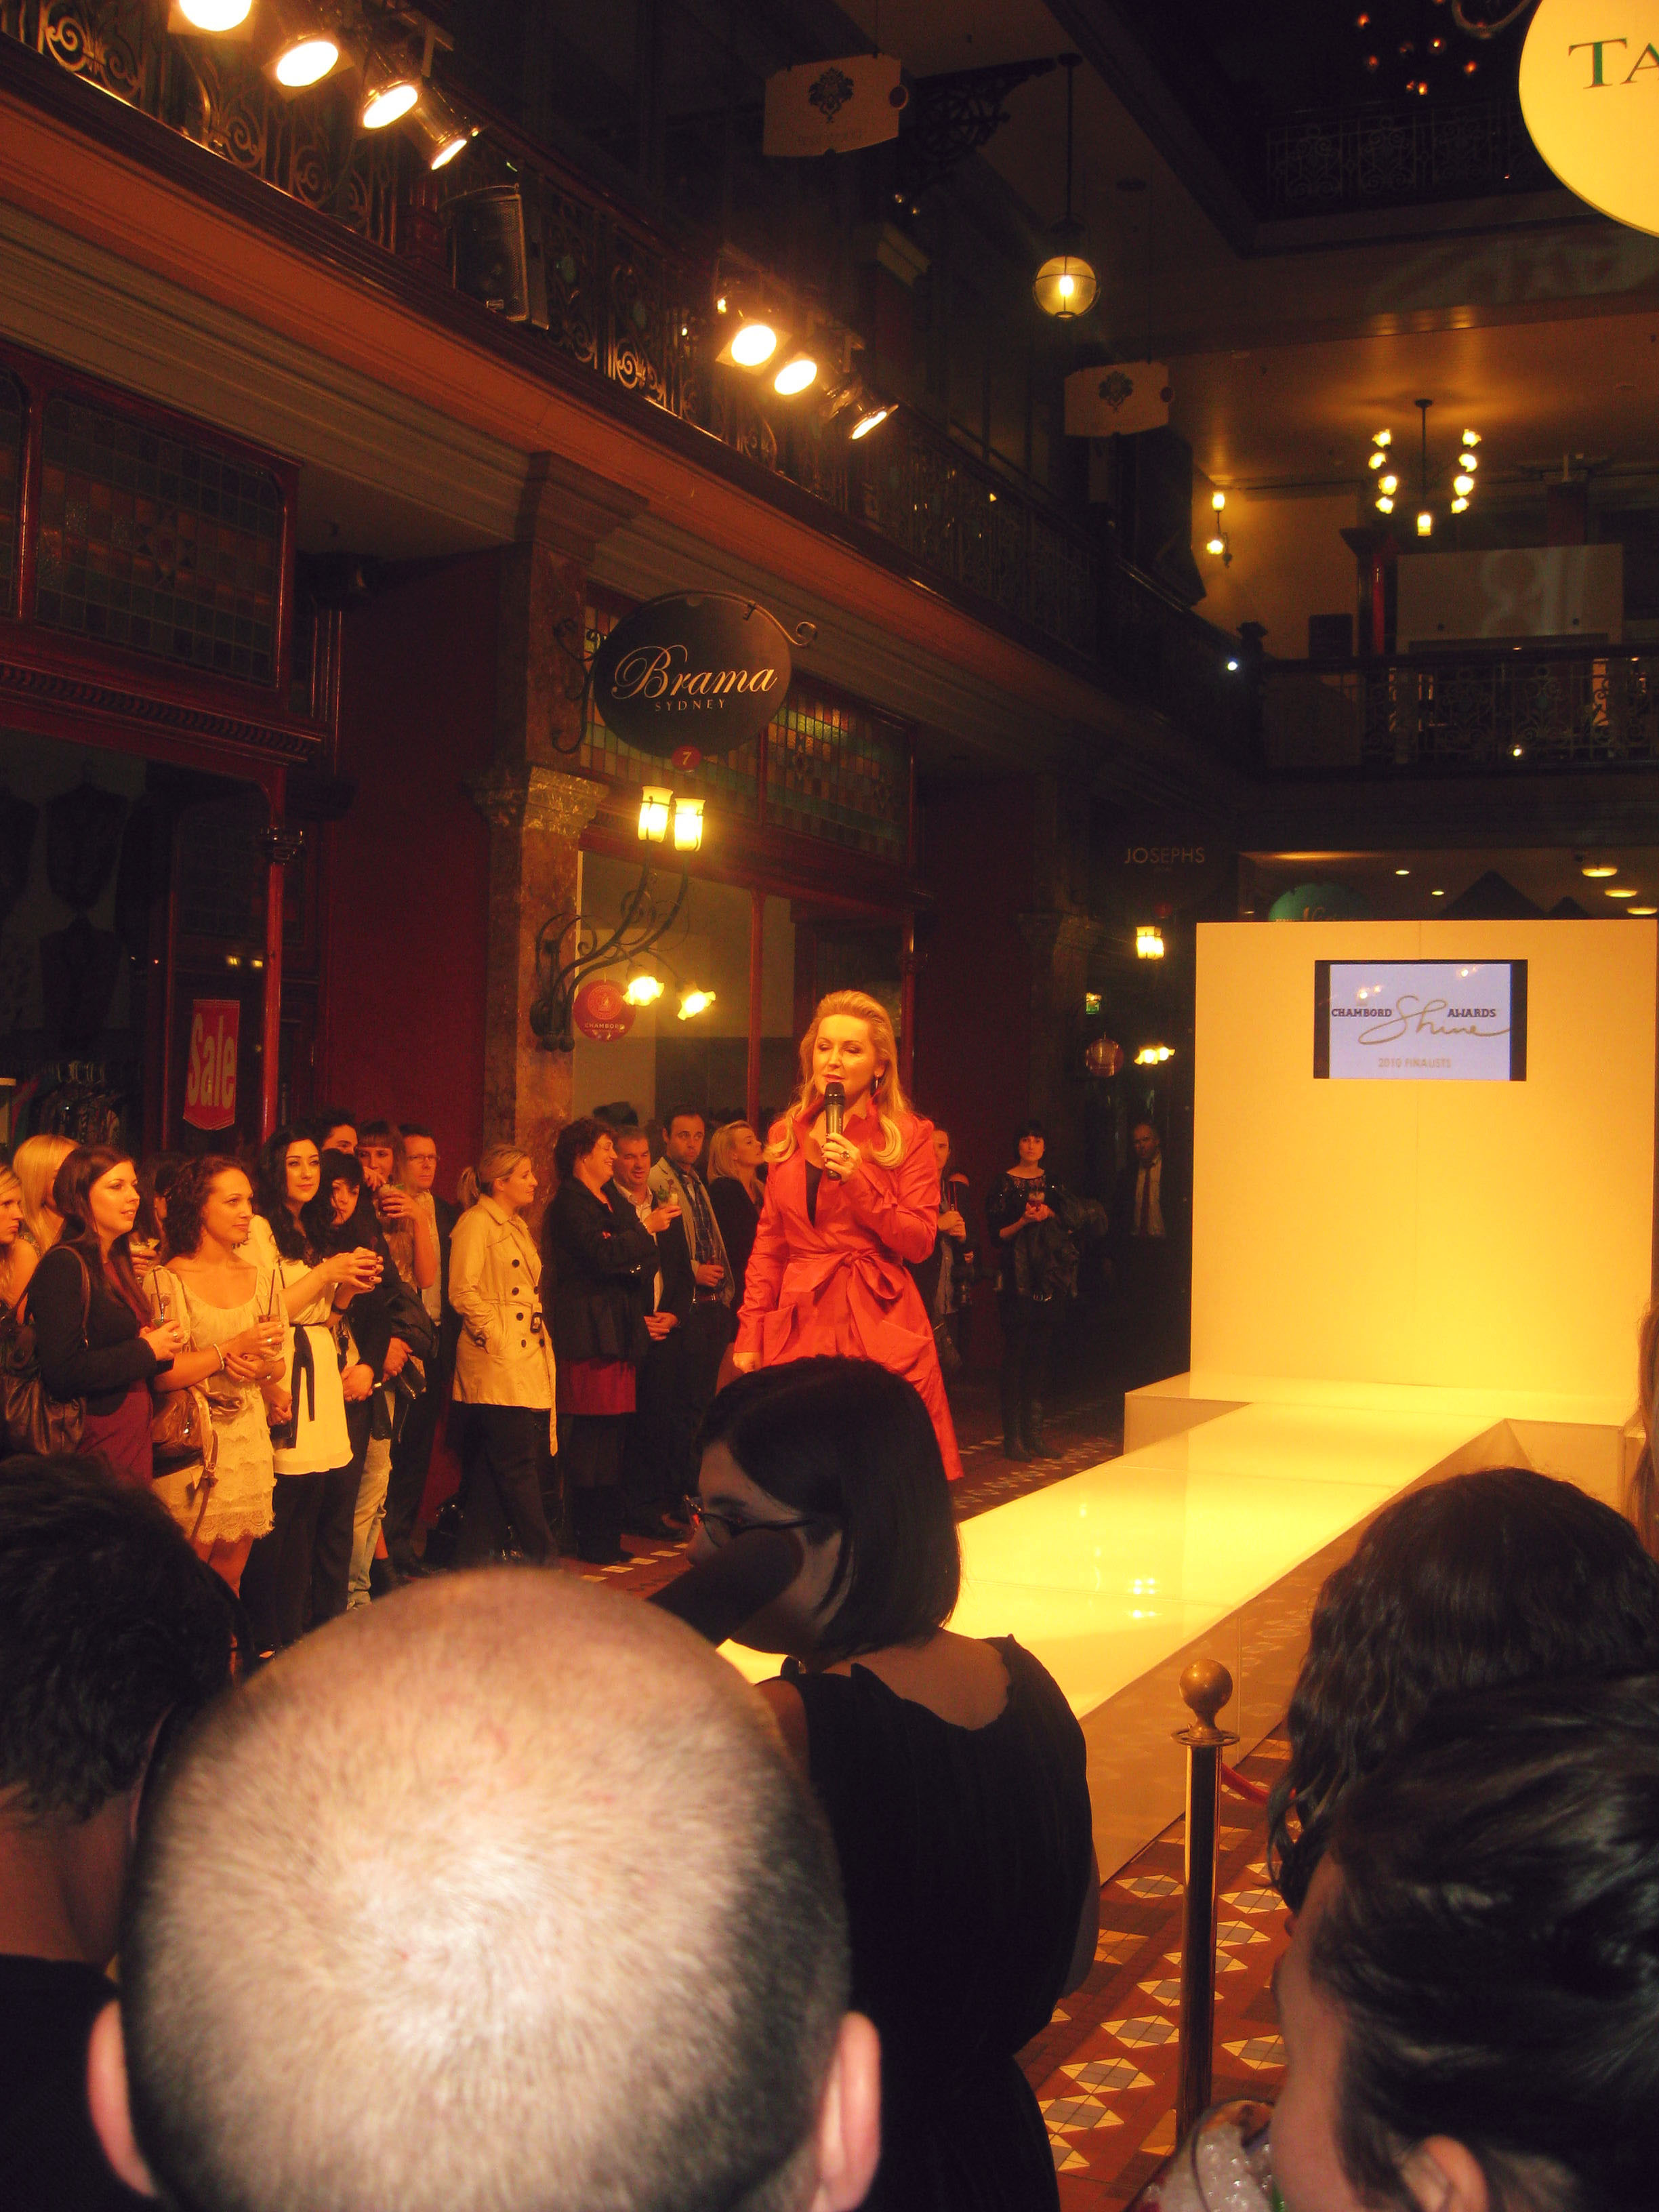 A woman with long blonde hair in a red jacket stands at the end of a white runway with a microphone, people crowded around.